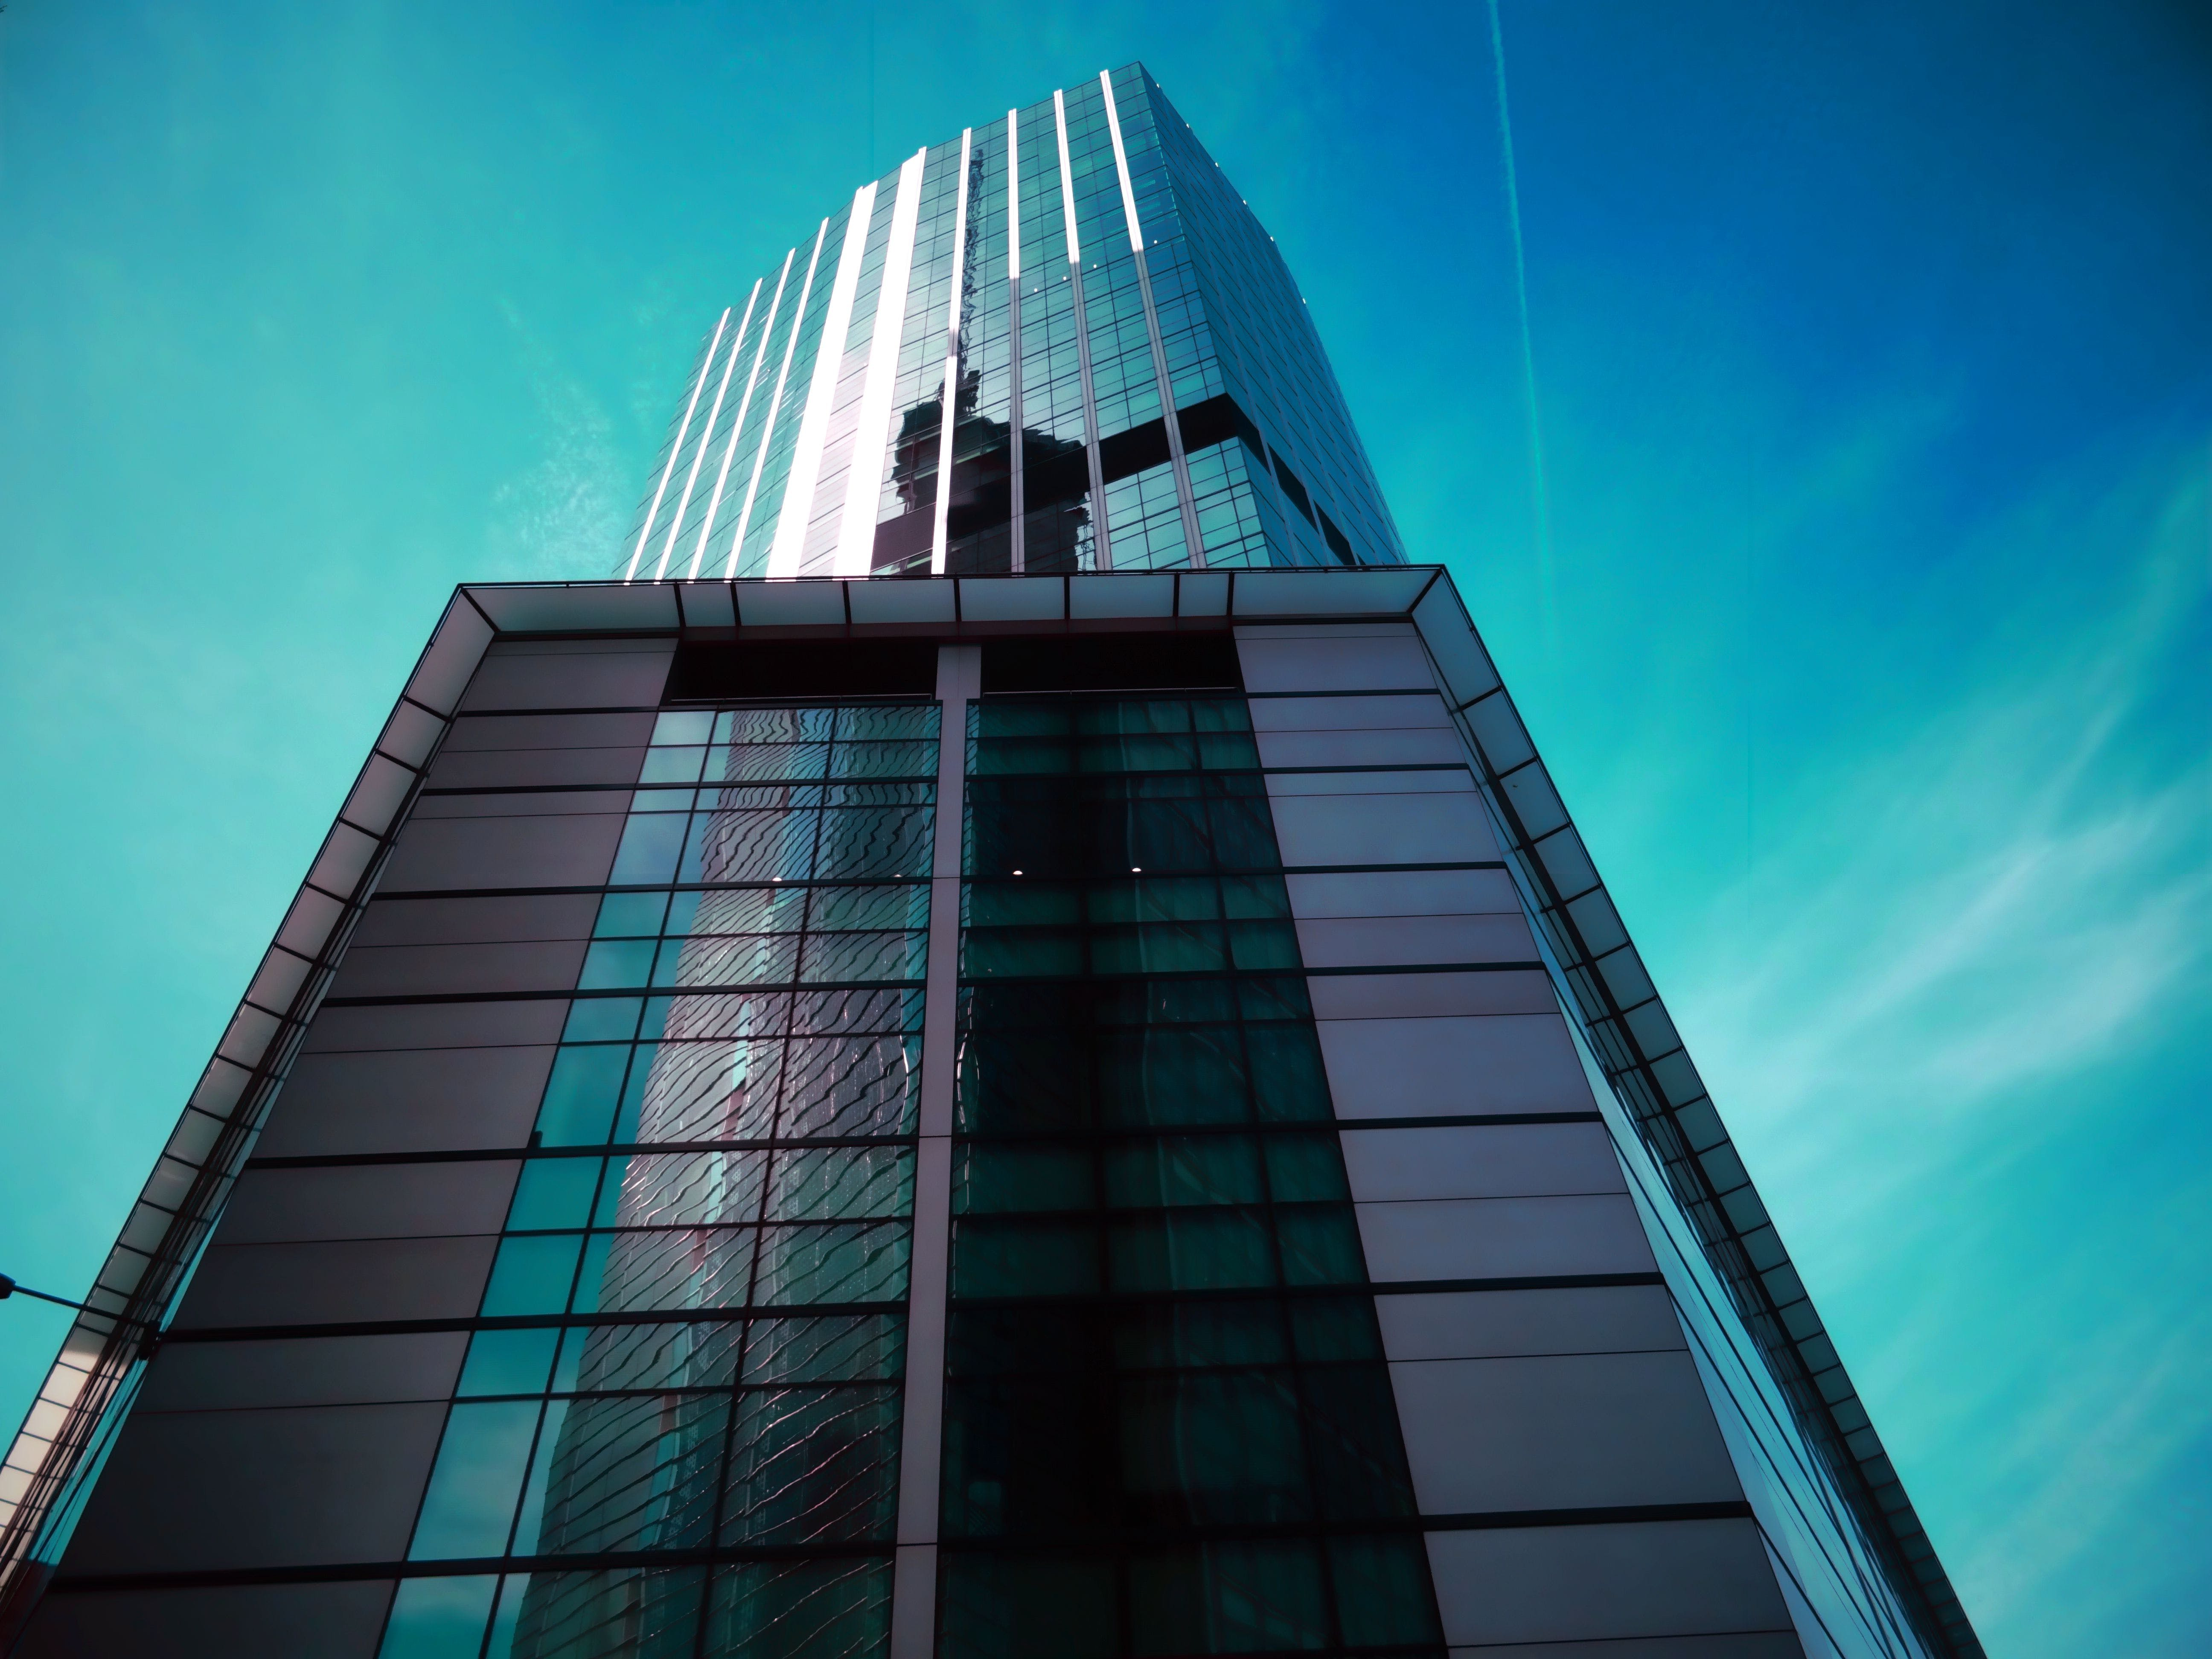 Free stock photo of city, sky, building, office